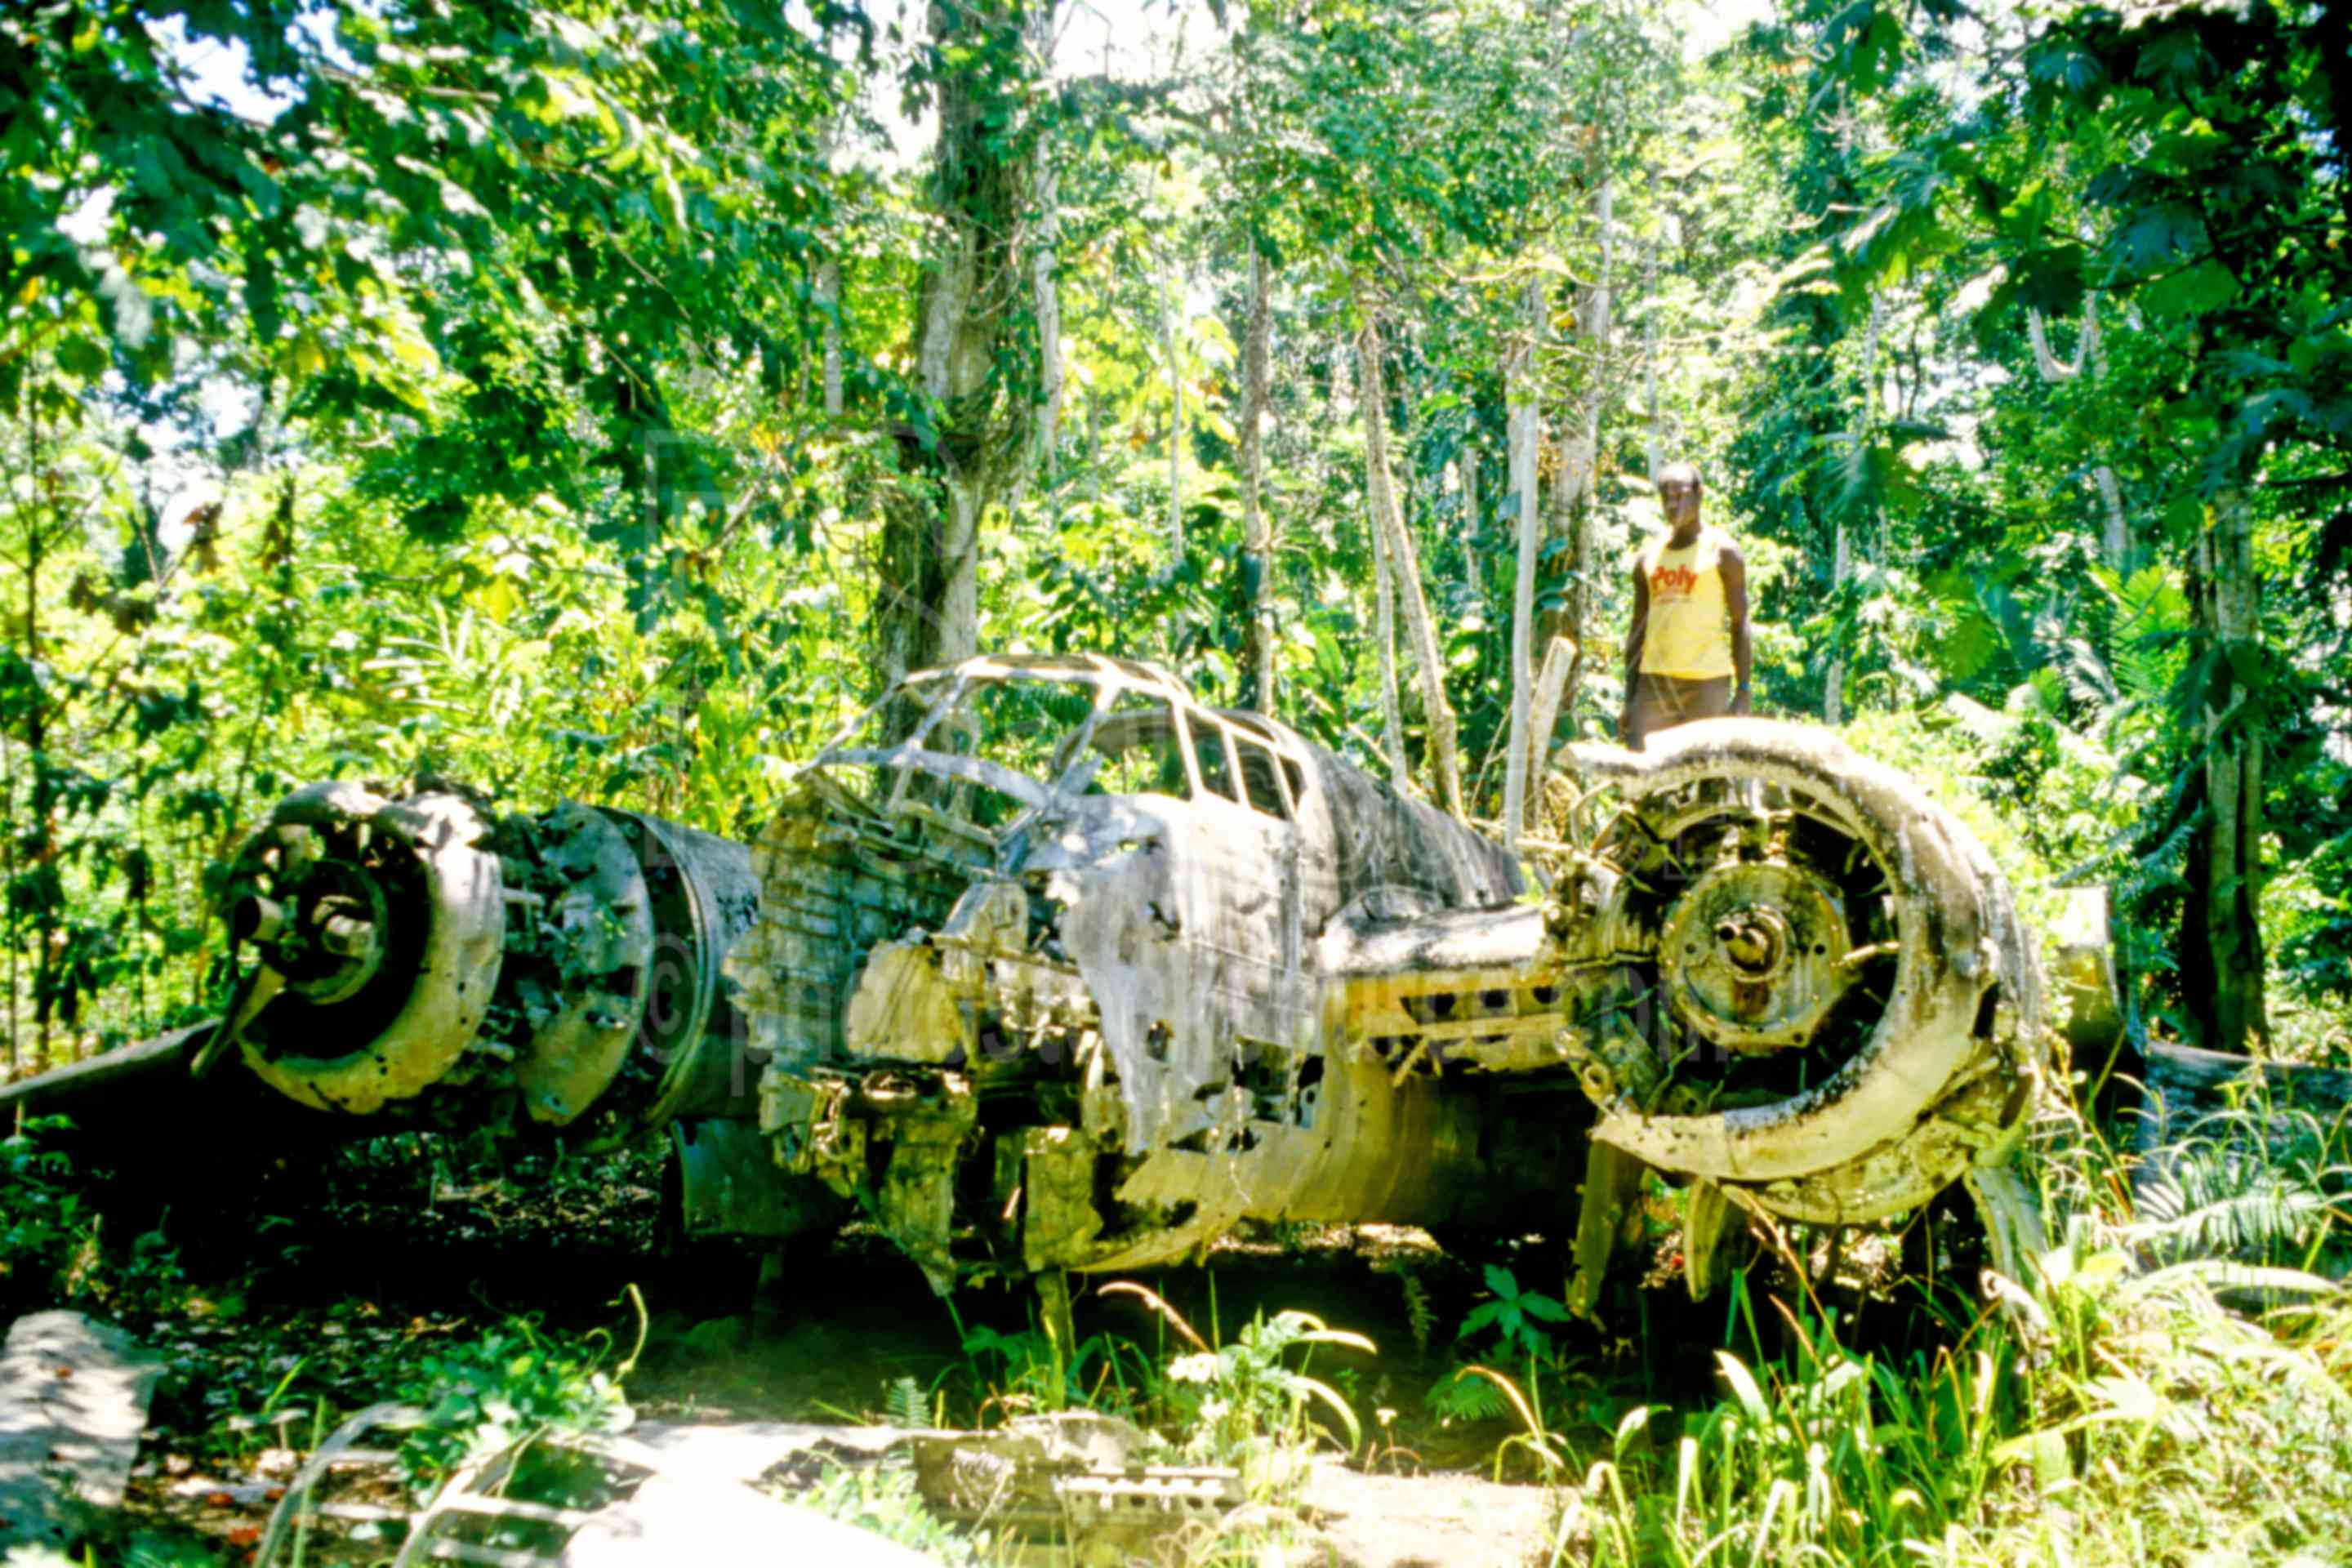 Japanese Bomber,bush,jungle,nature,plane,wwii